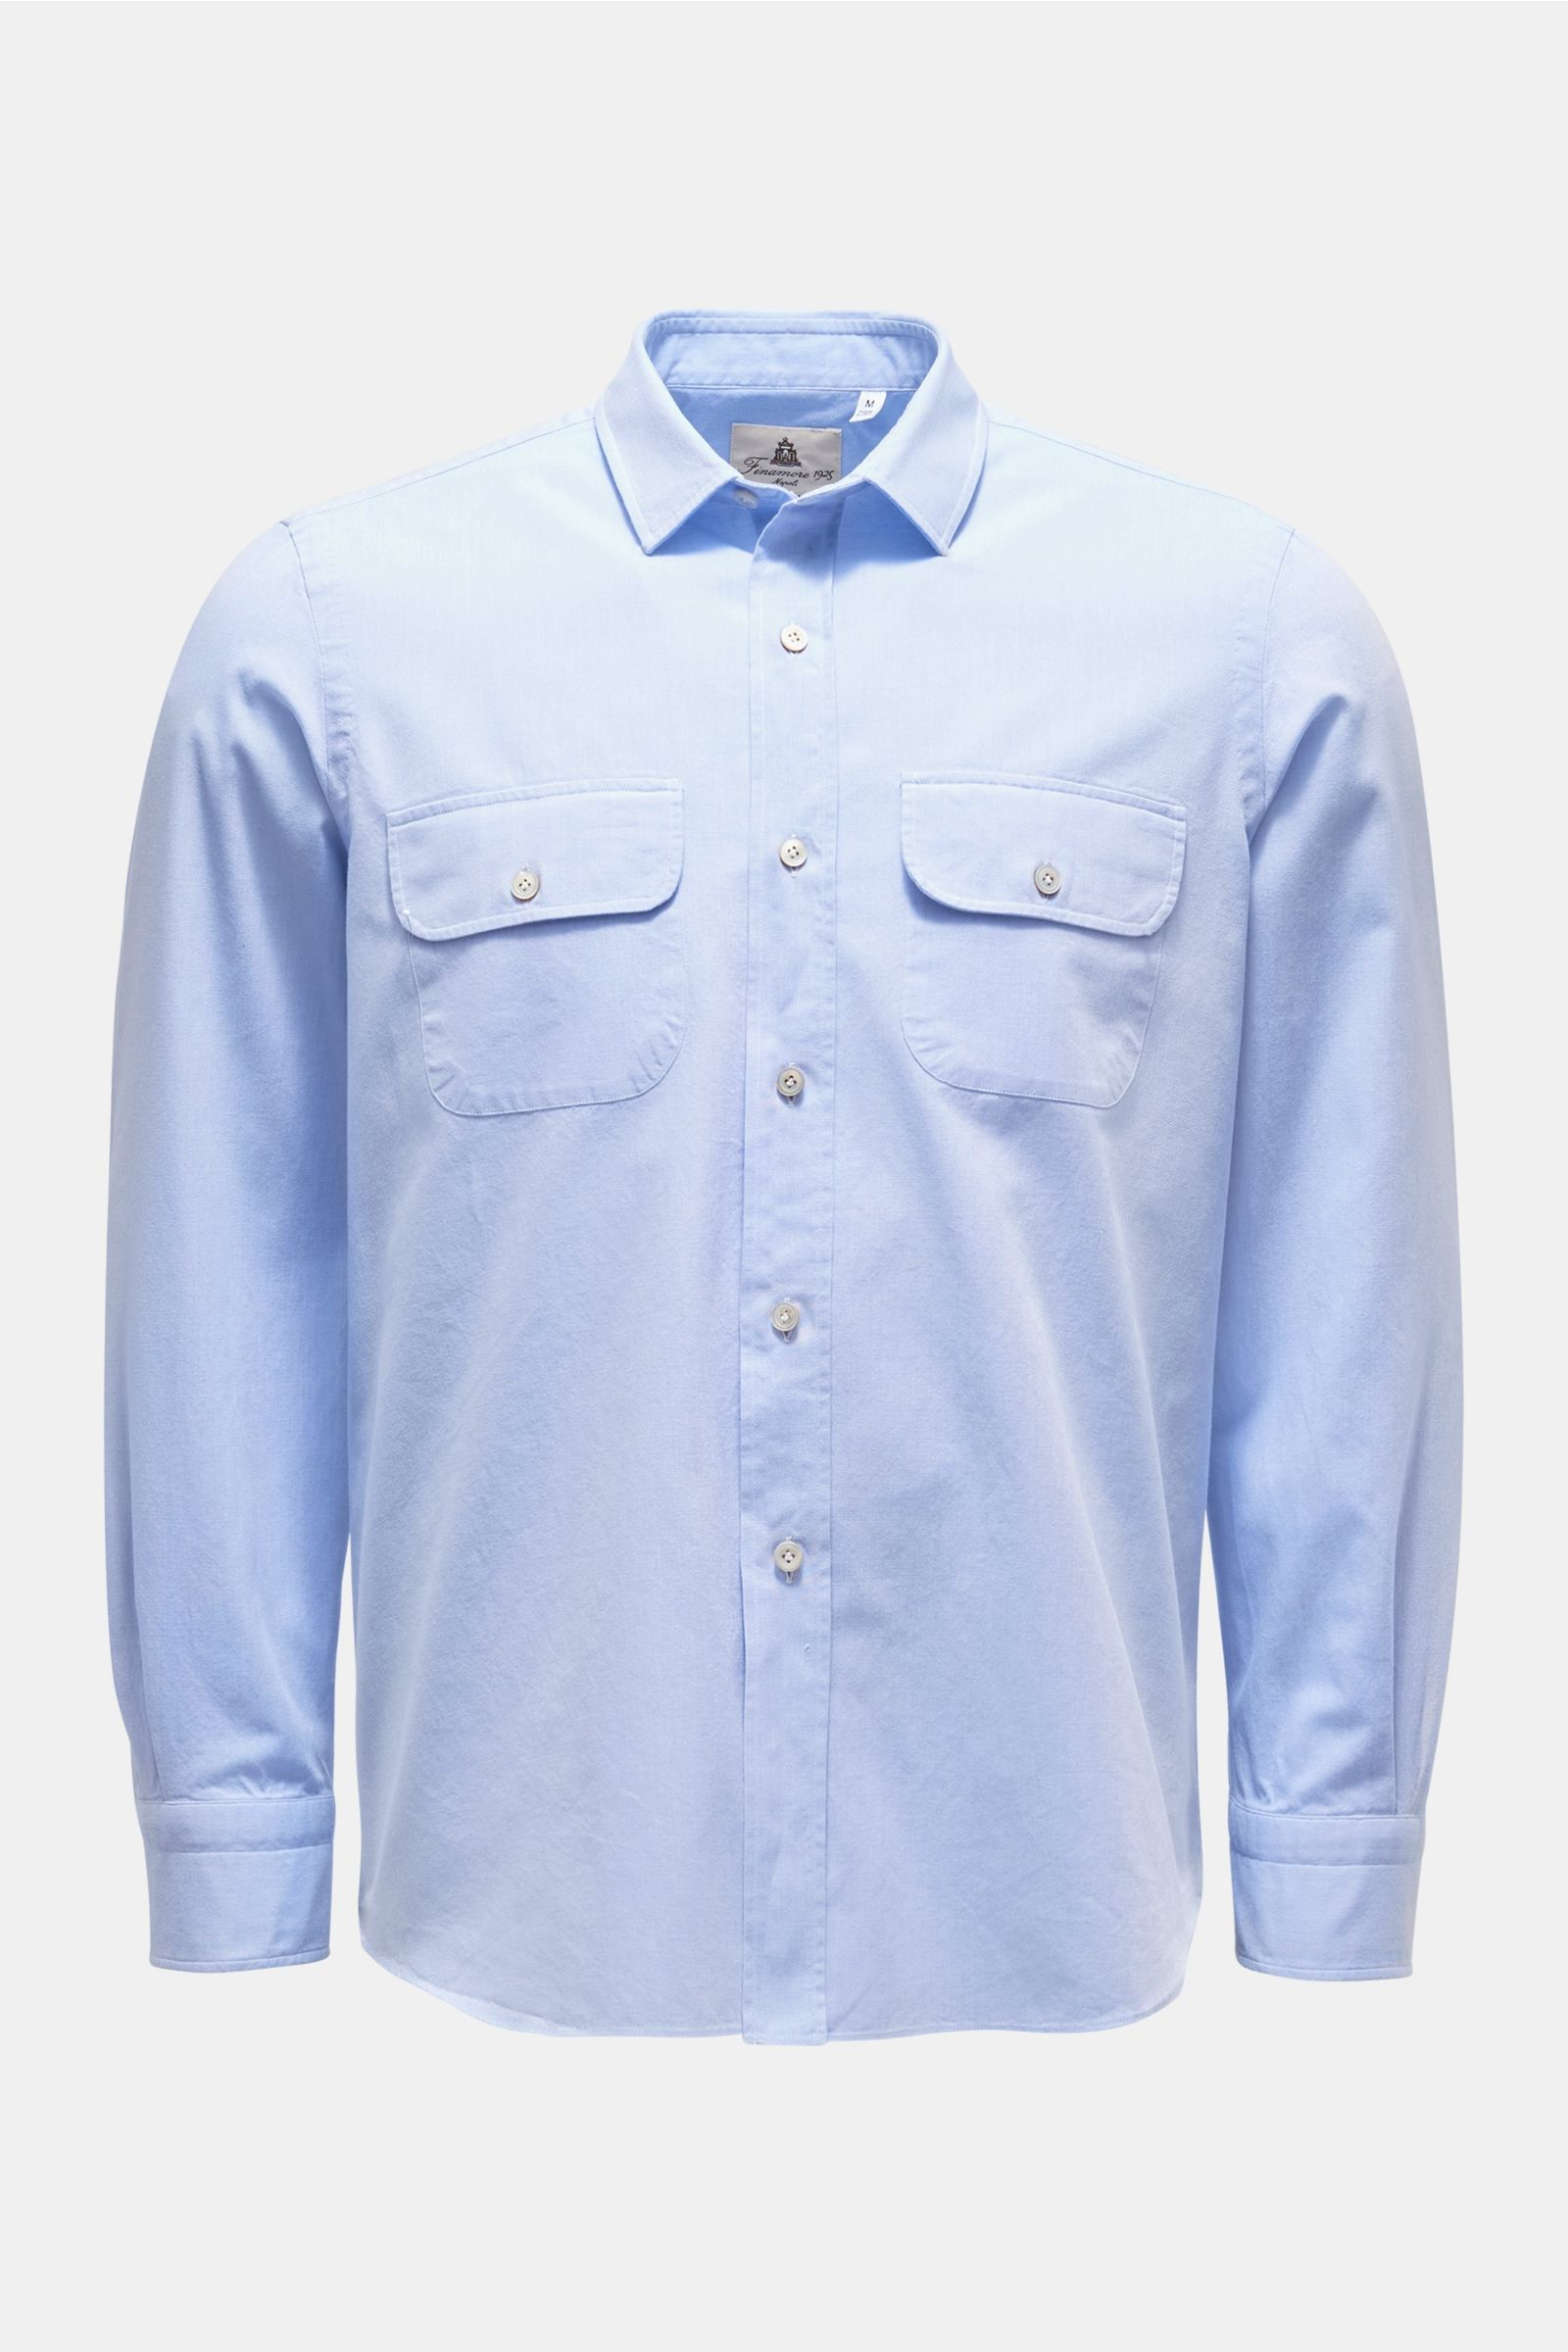 Chambray shirt 'Silvano Clark' with slim collar light blue